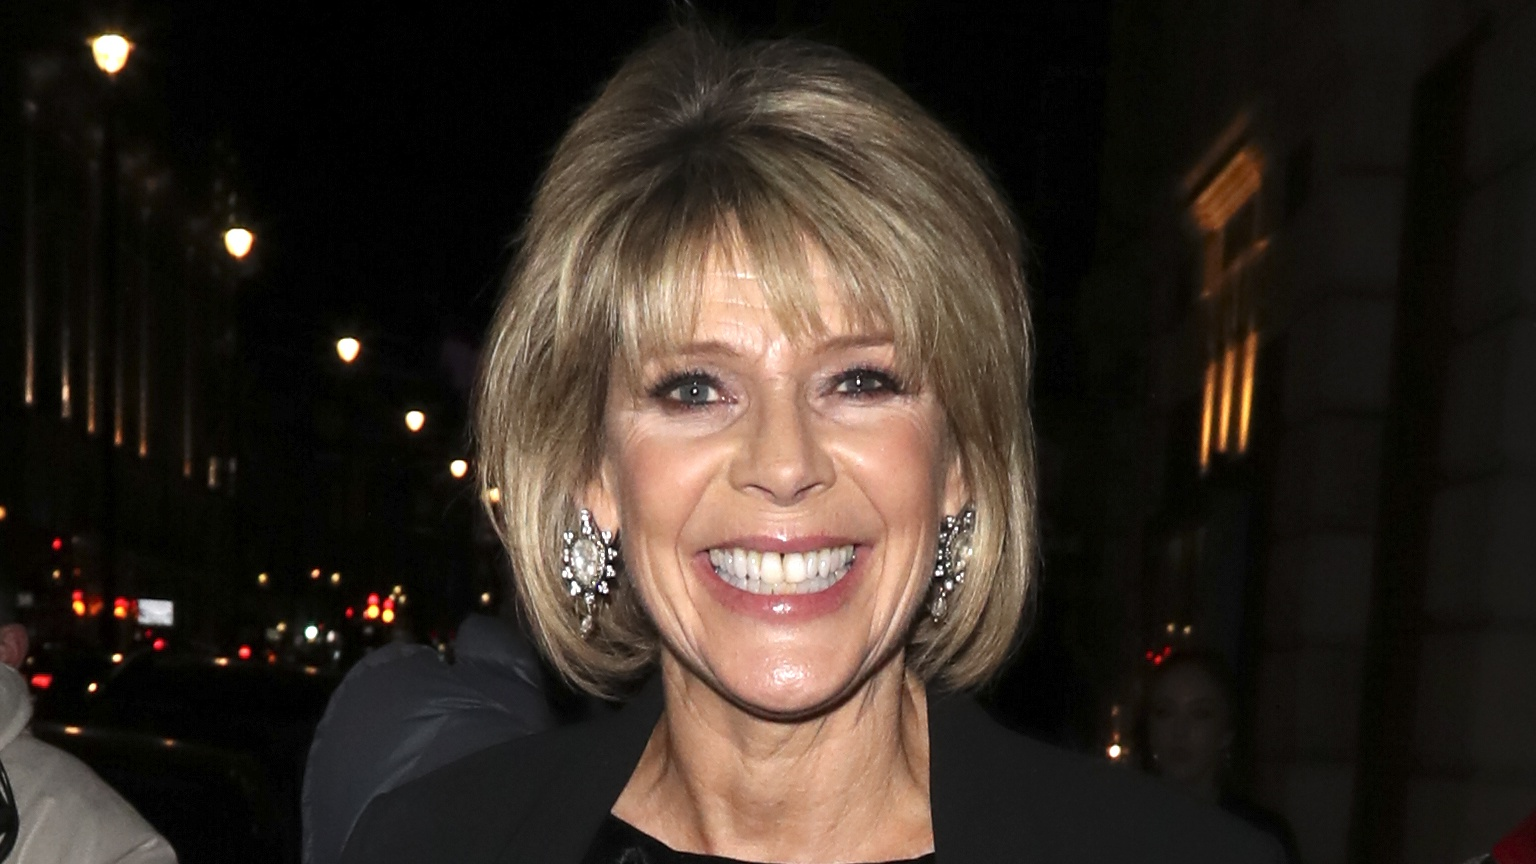 Ruth Langsford missing her mum amid pandemic